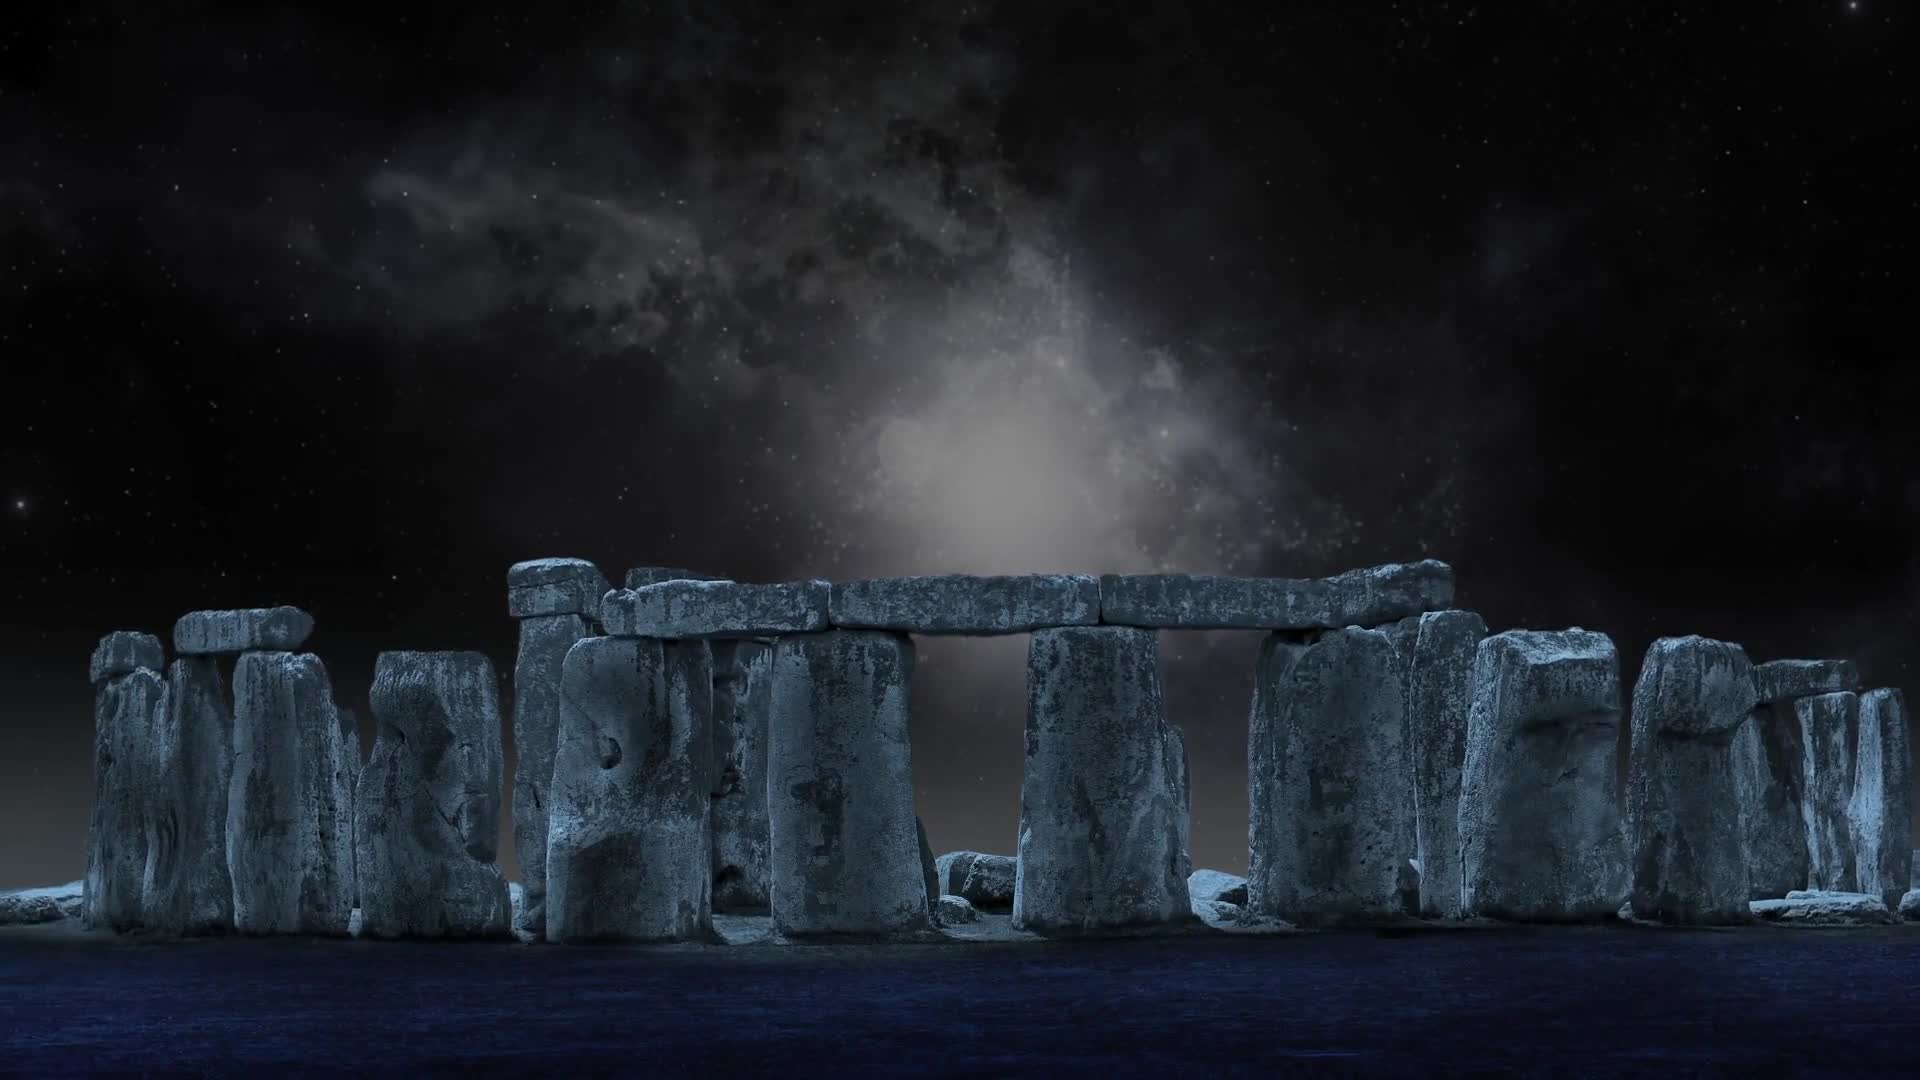 Stonehenge moon full moon stone circle night sky